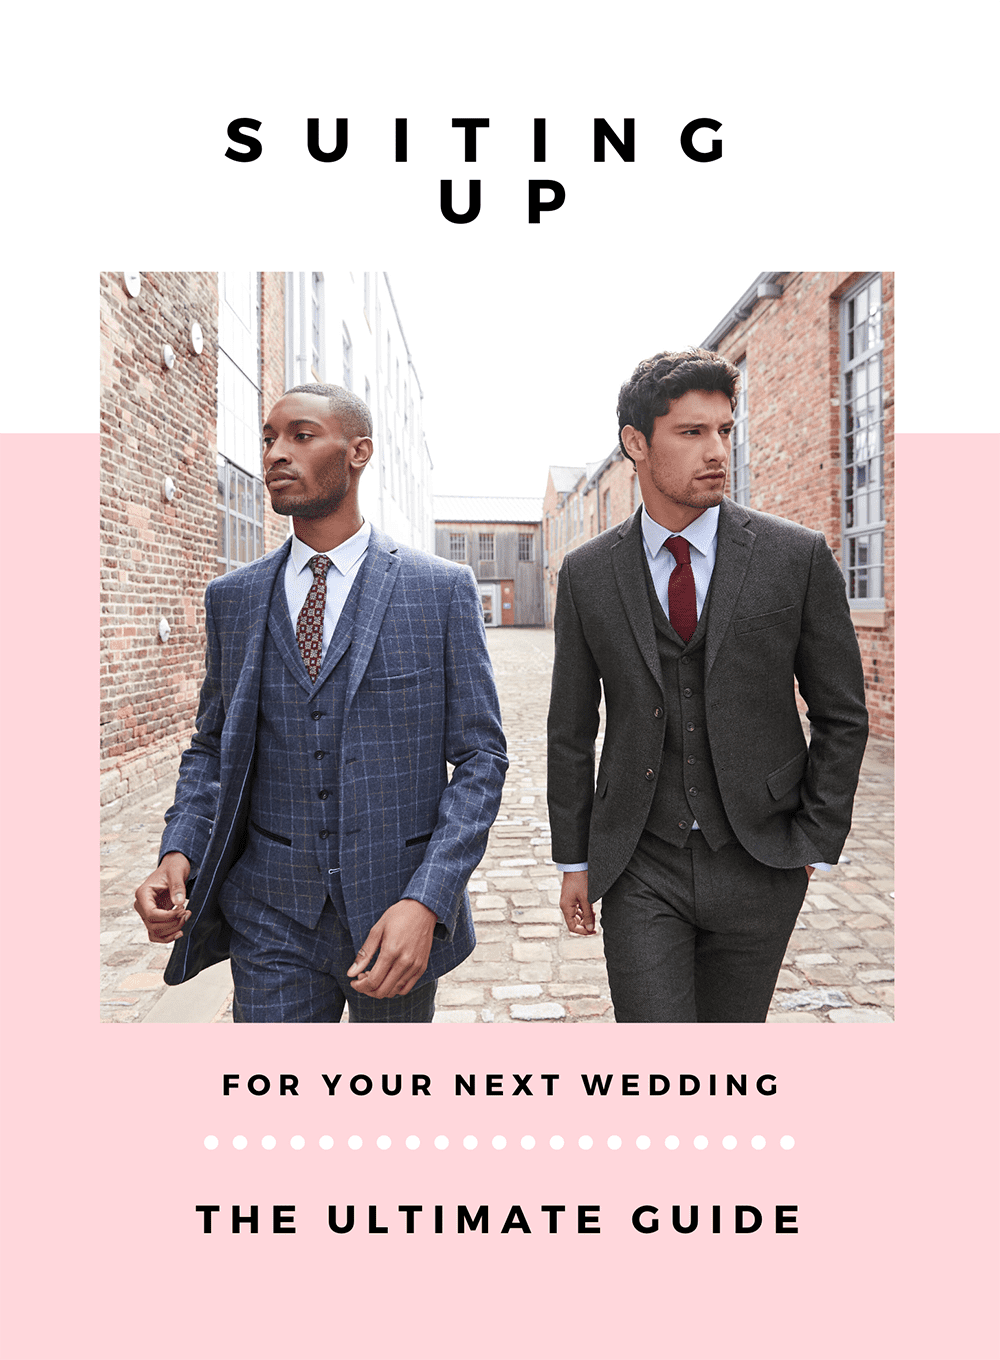 The Ultimate Guide to buying a wedding suit with suitdirect.co.uk